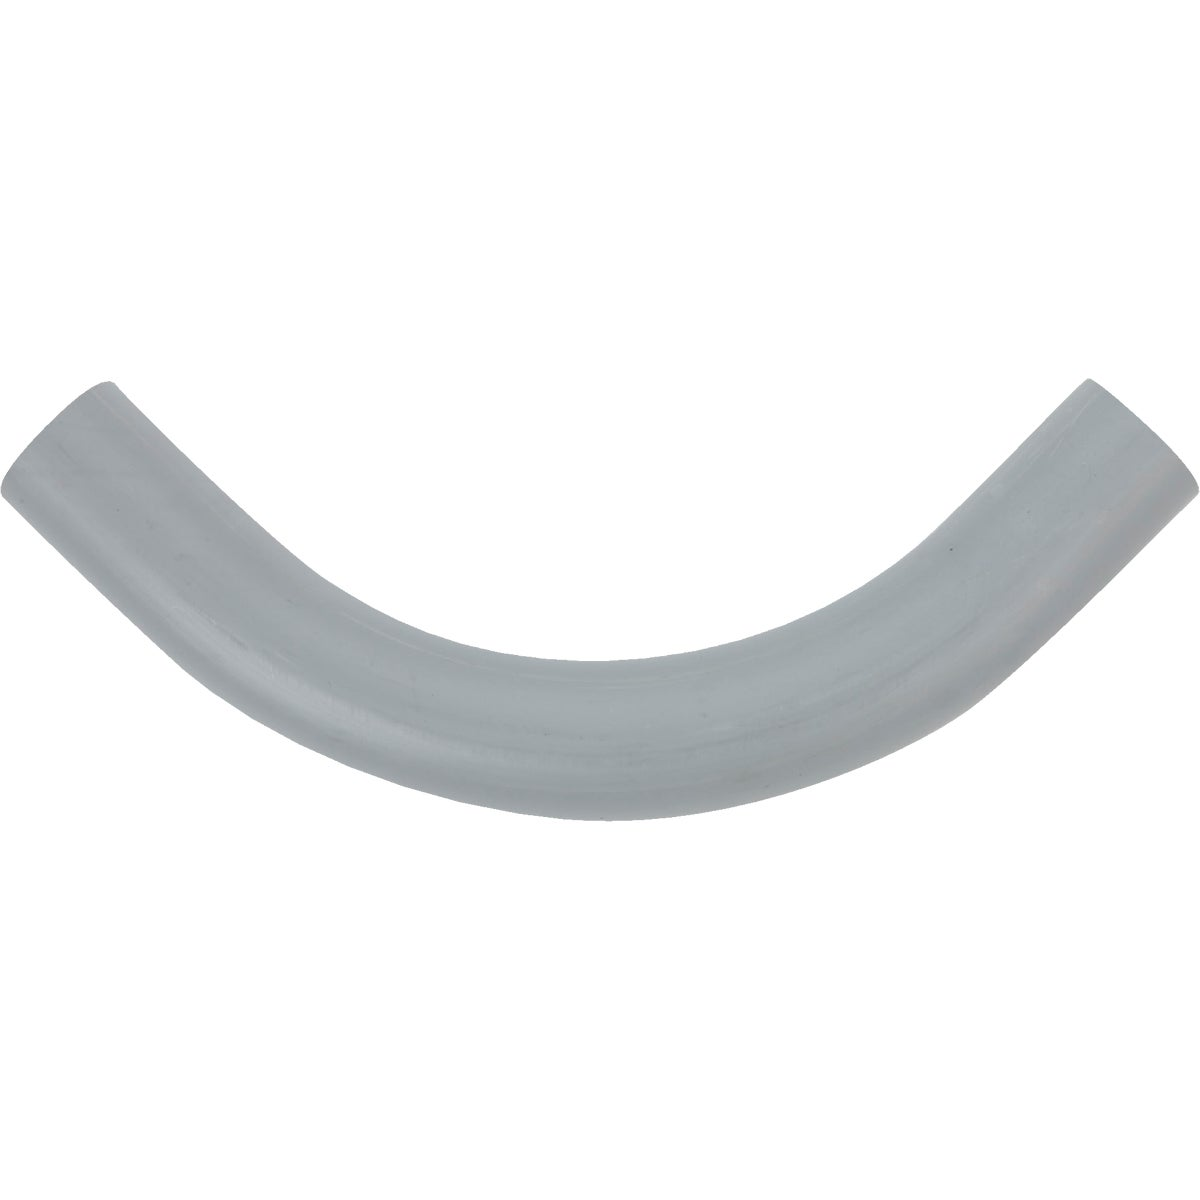 "2-1/2"" PVC ELBOW - UA9AKCAR by Thomas & Betts"